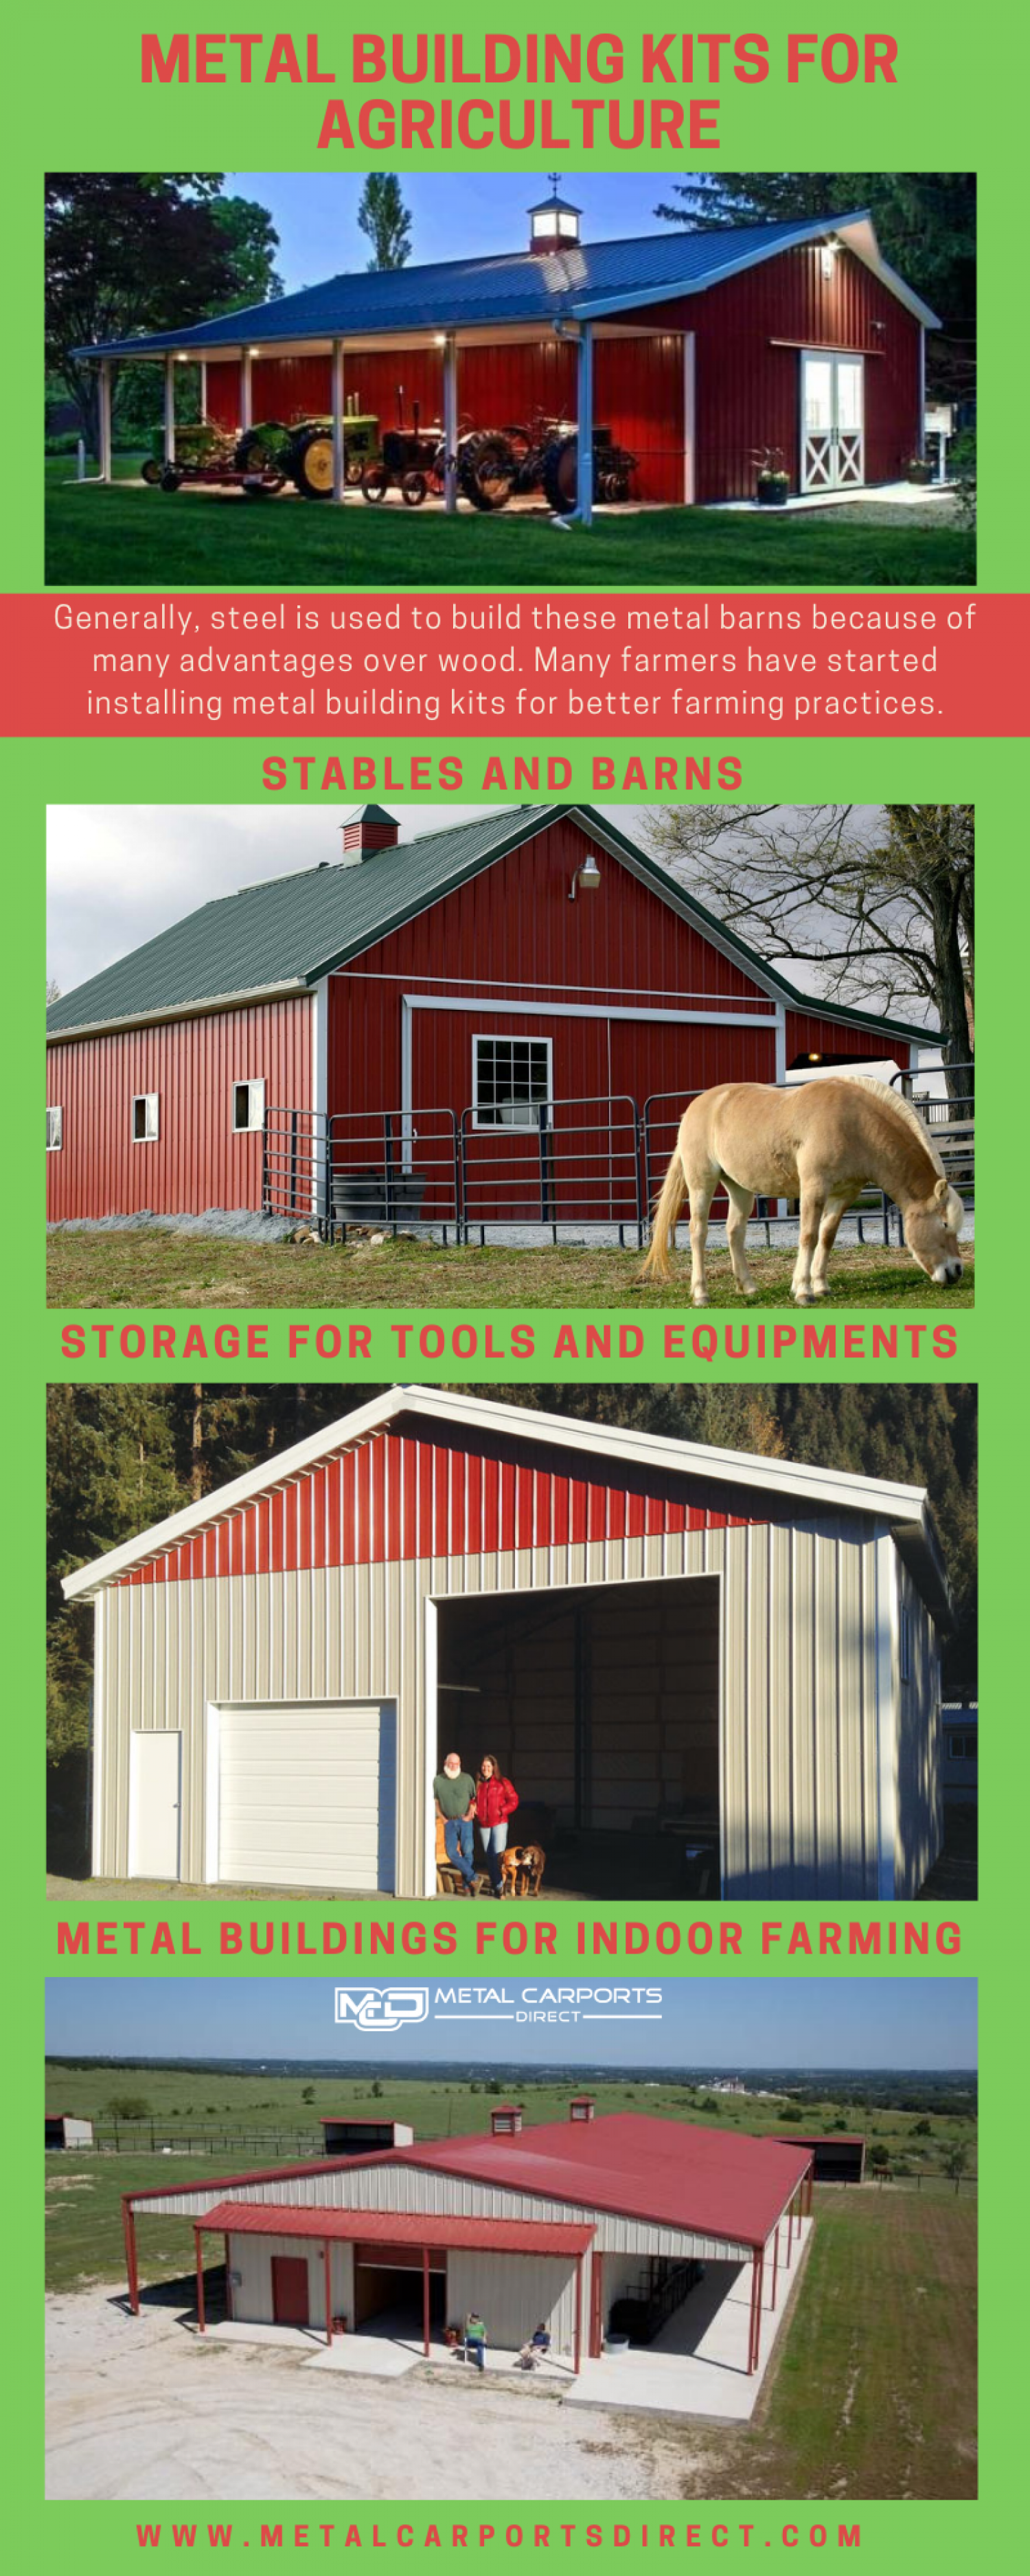 How to Use Metal Building Kits for Agriculture Infographic